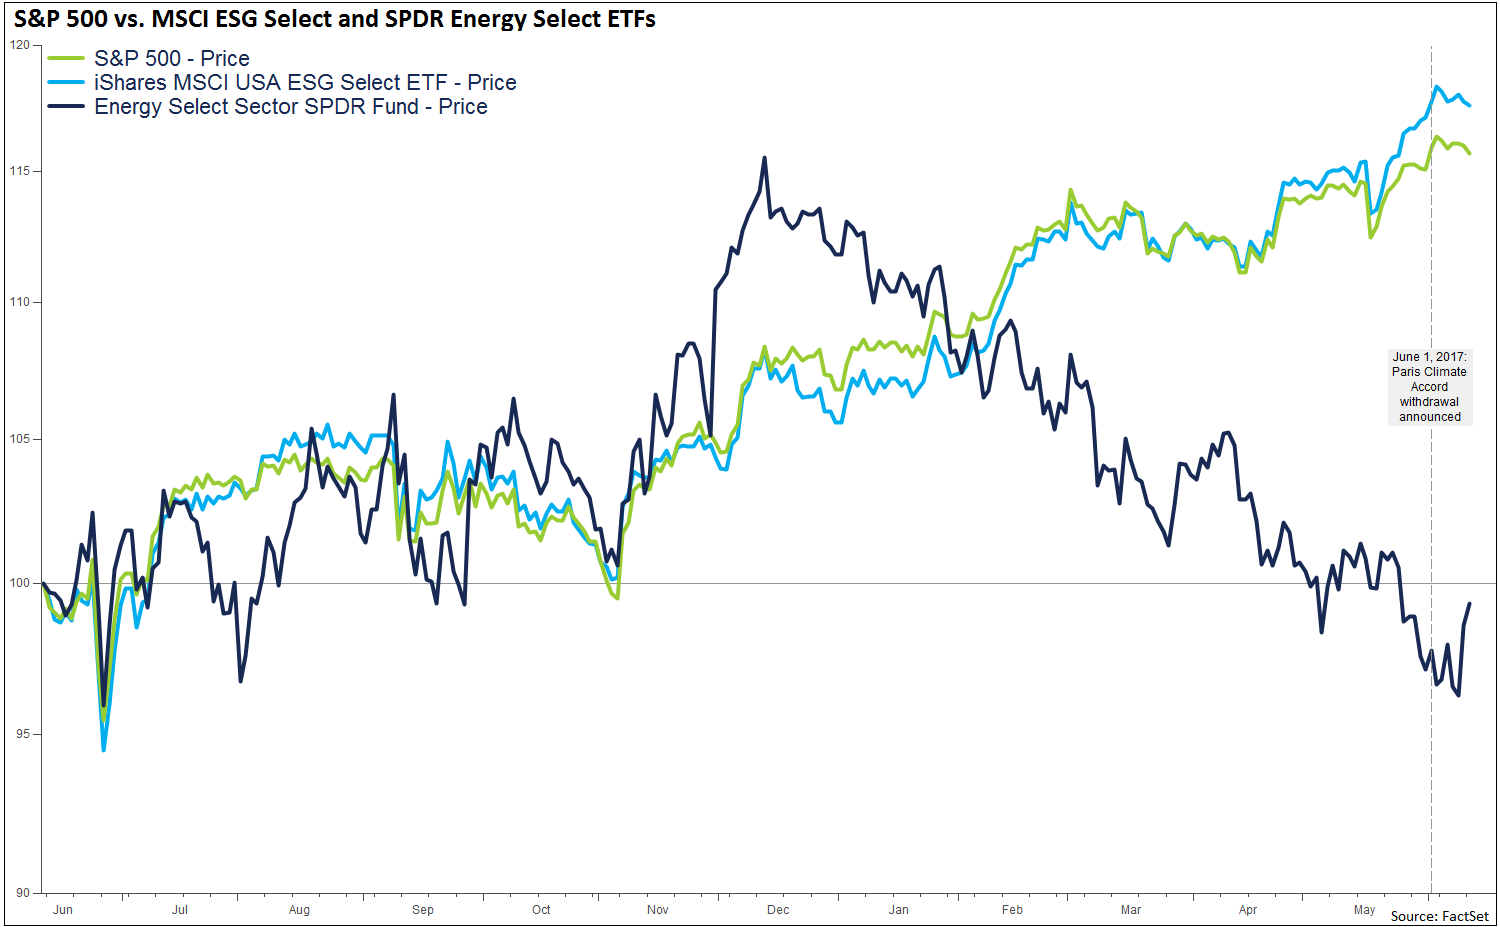 The-two-ETFs-have-experienced-9.7-and-7.6-price-changes-respectively